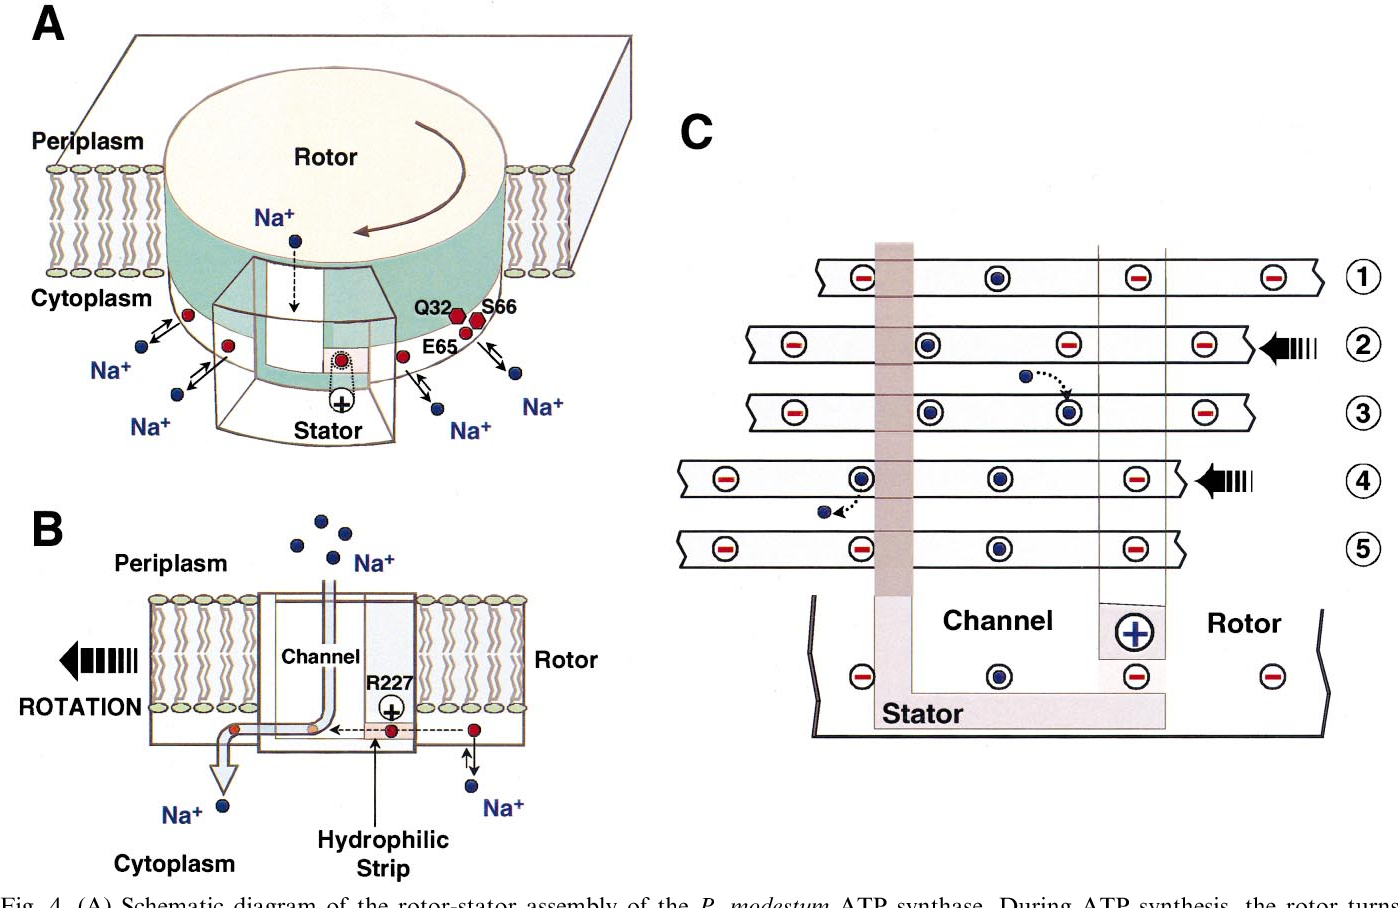 figure 4 from operation of the f motor of the atp synthase Motor Stator Winding Diagram a schematic diagram of the rotor stator assembly of